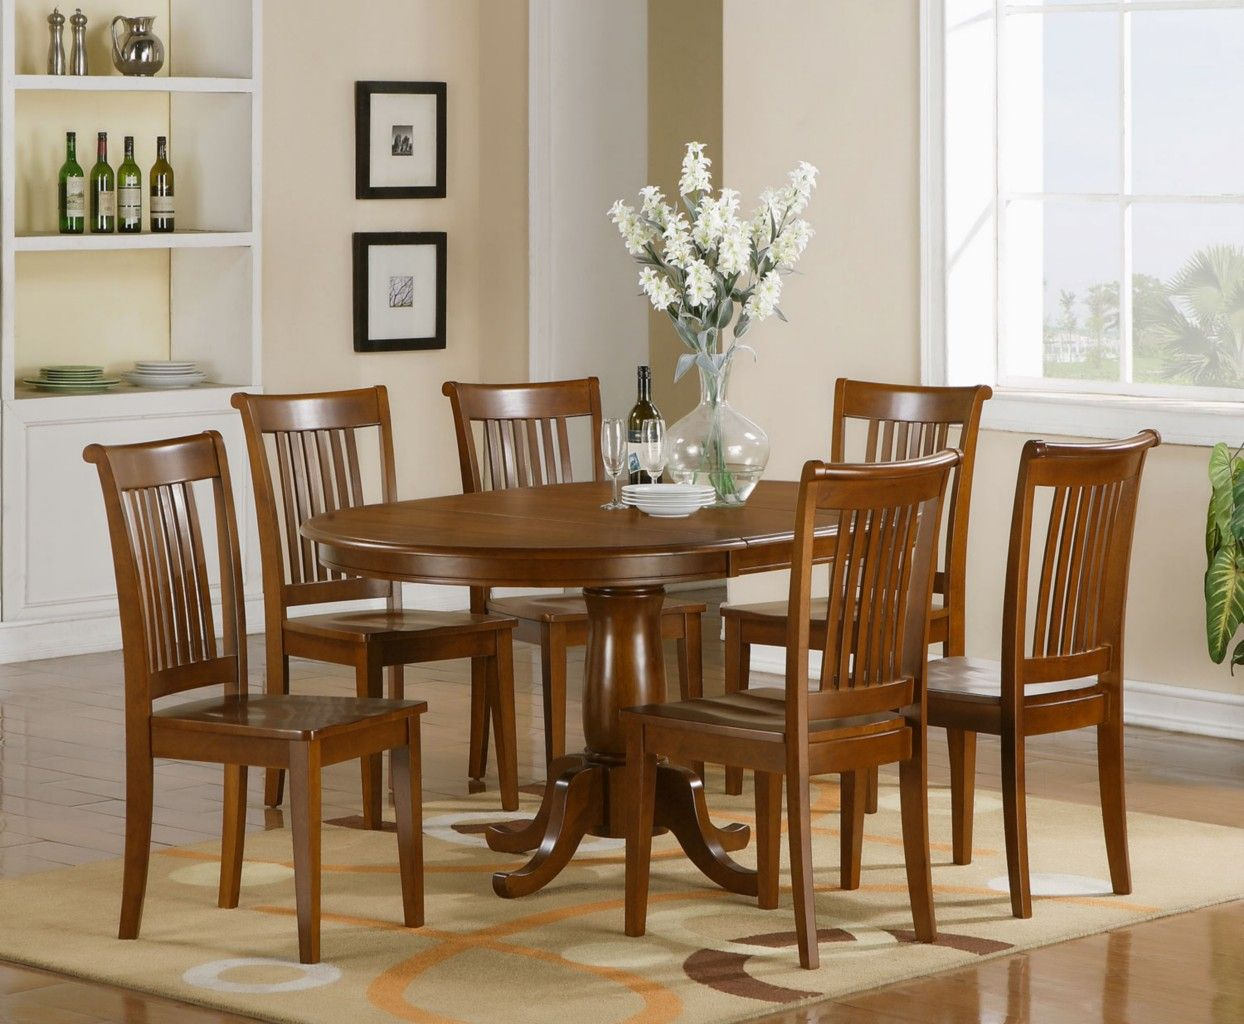 Cheap Dining Room Sets The Cheapest Yet The Best Dining Room